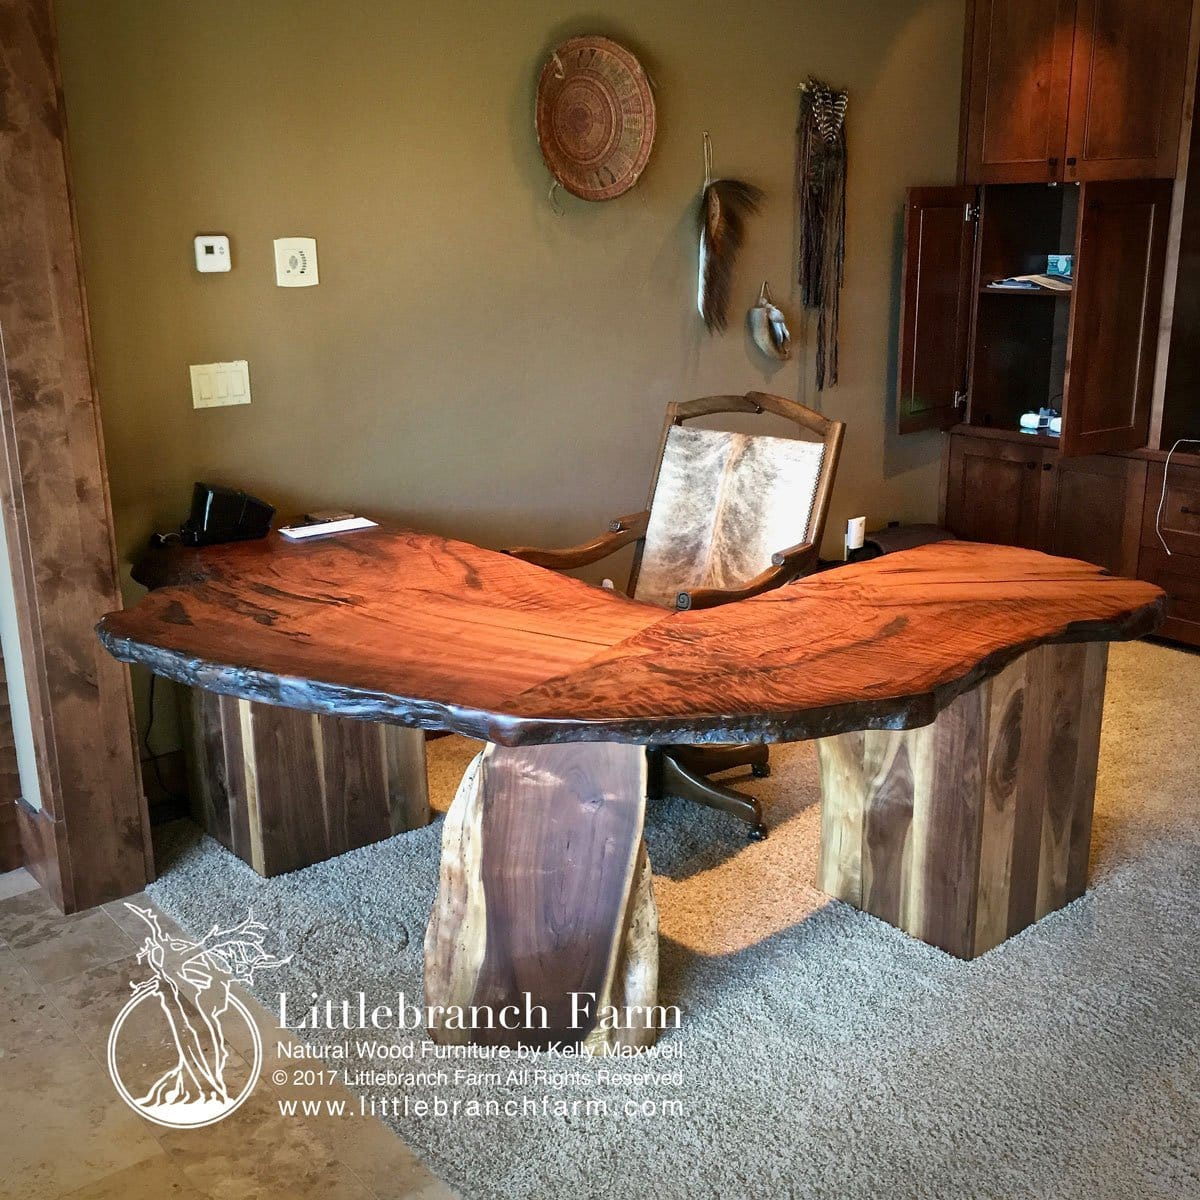 Custom Rustic Desk Handcrafted For A Home Executive Office It Features Old Growth Curly Redwood Wood Slabs Supported By Black Walnut Bases